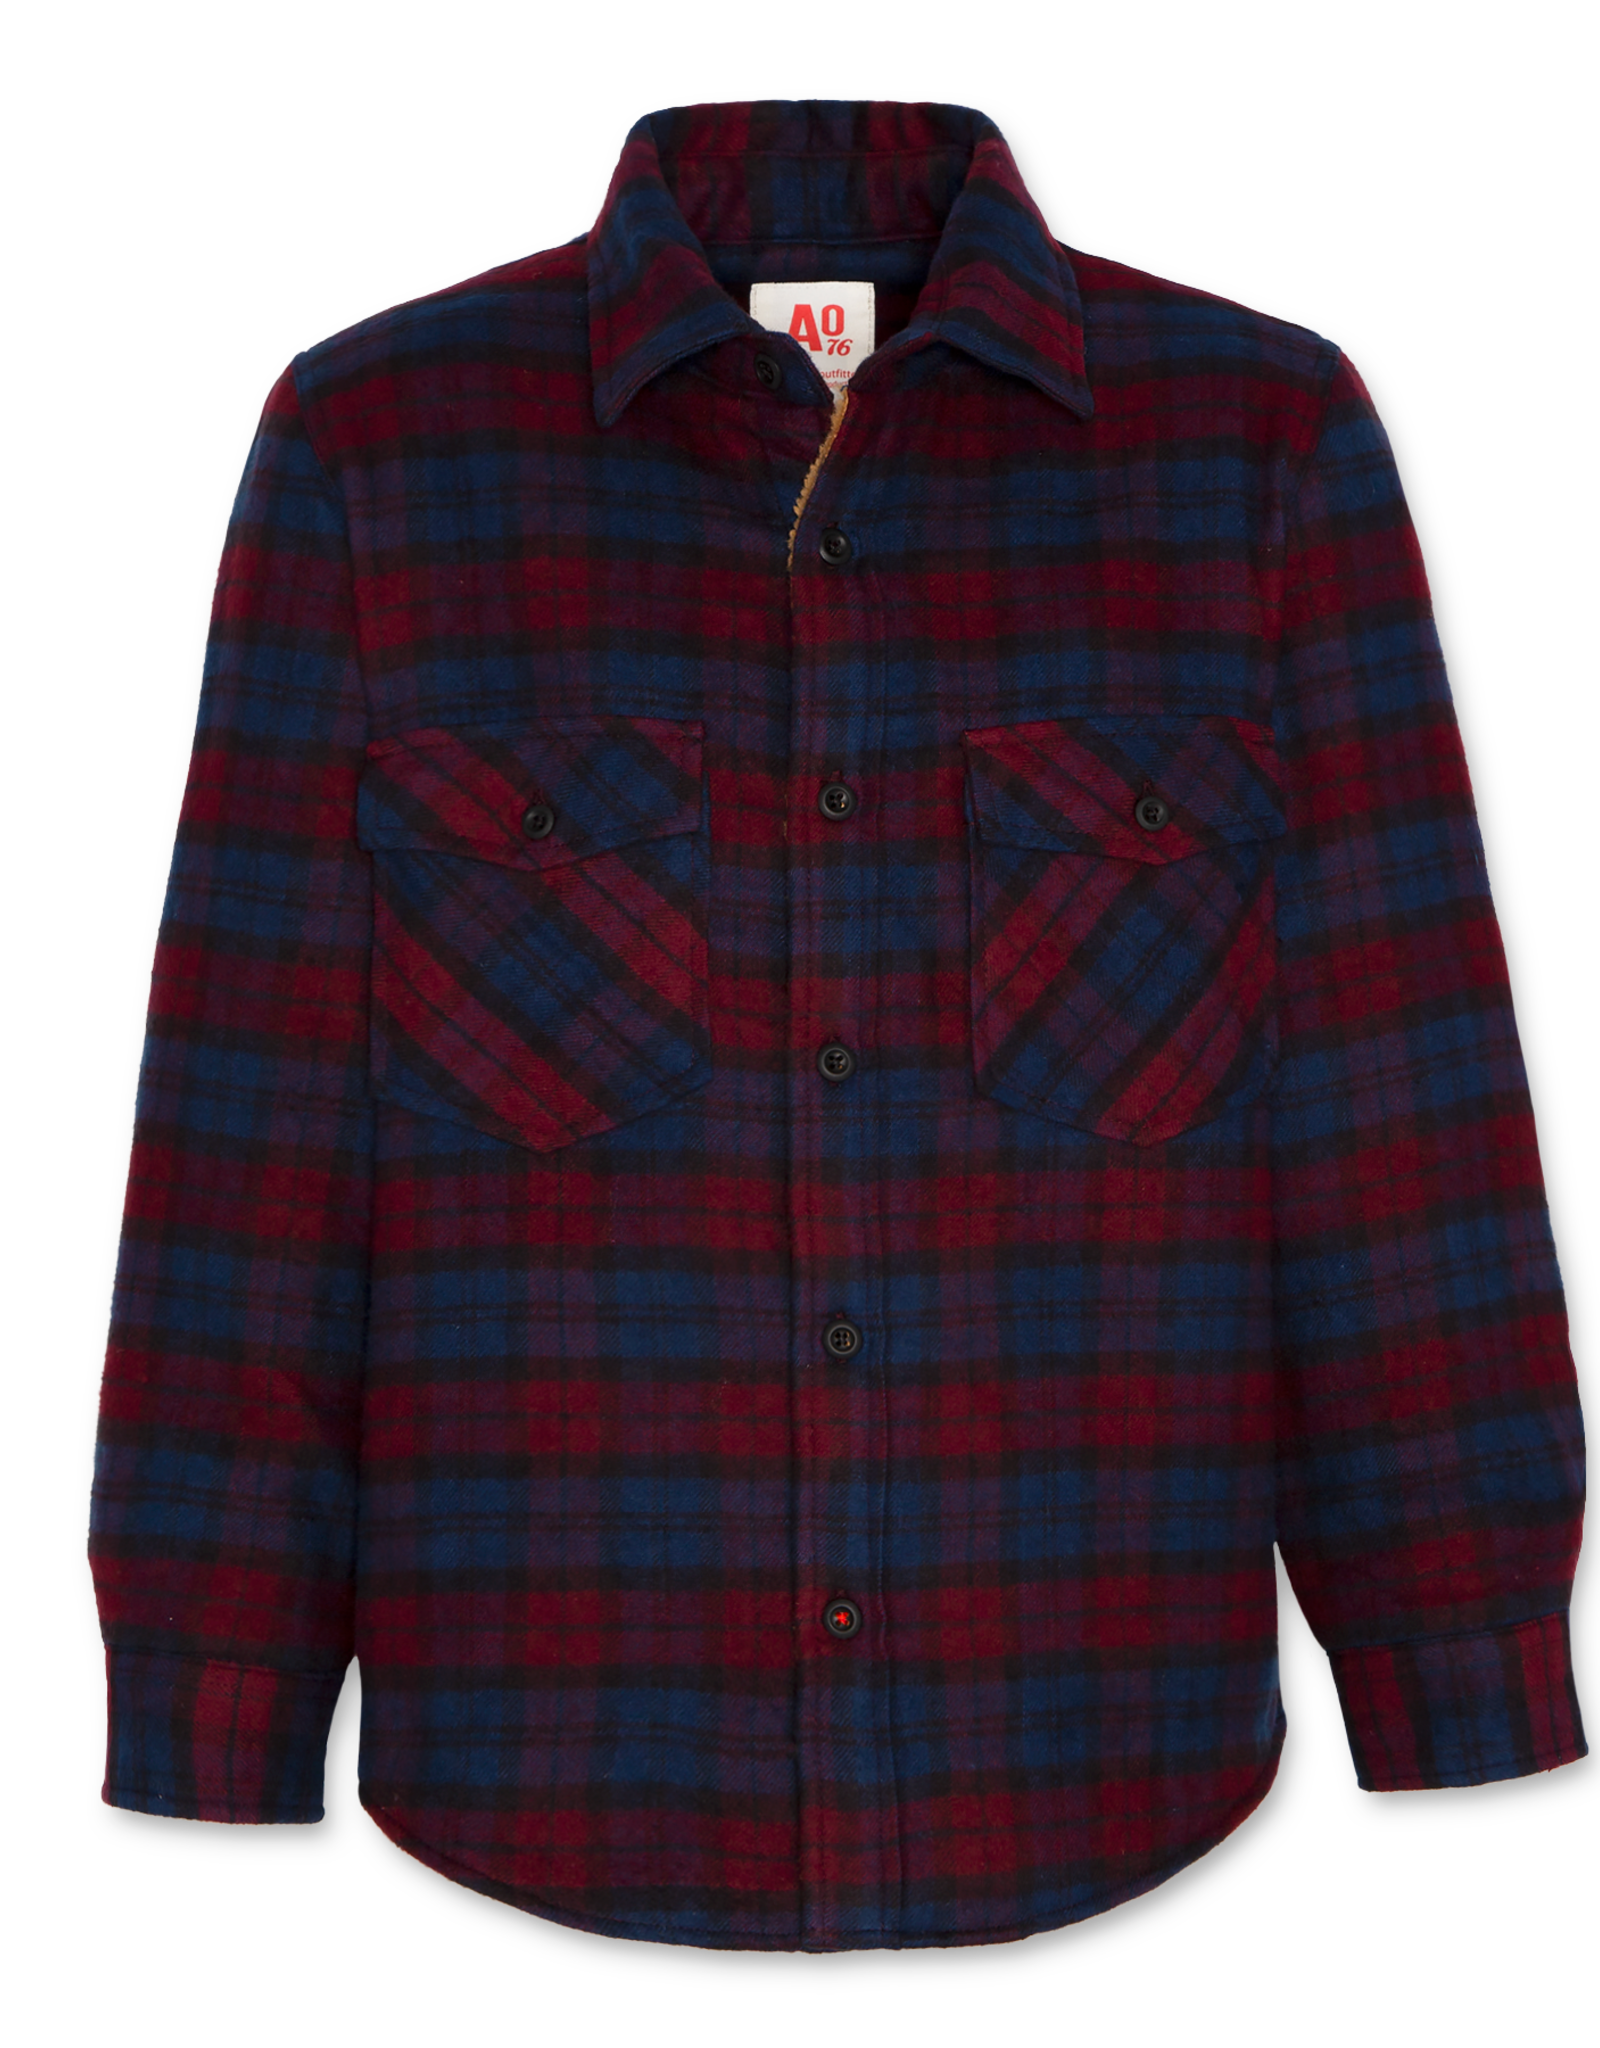 AMERICAN OUTFITTERS AO76 henryck teddy shirt navy